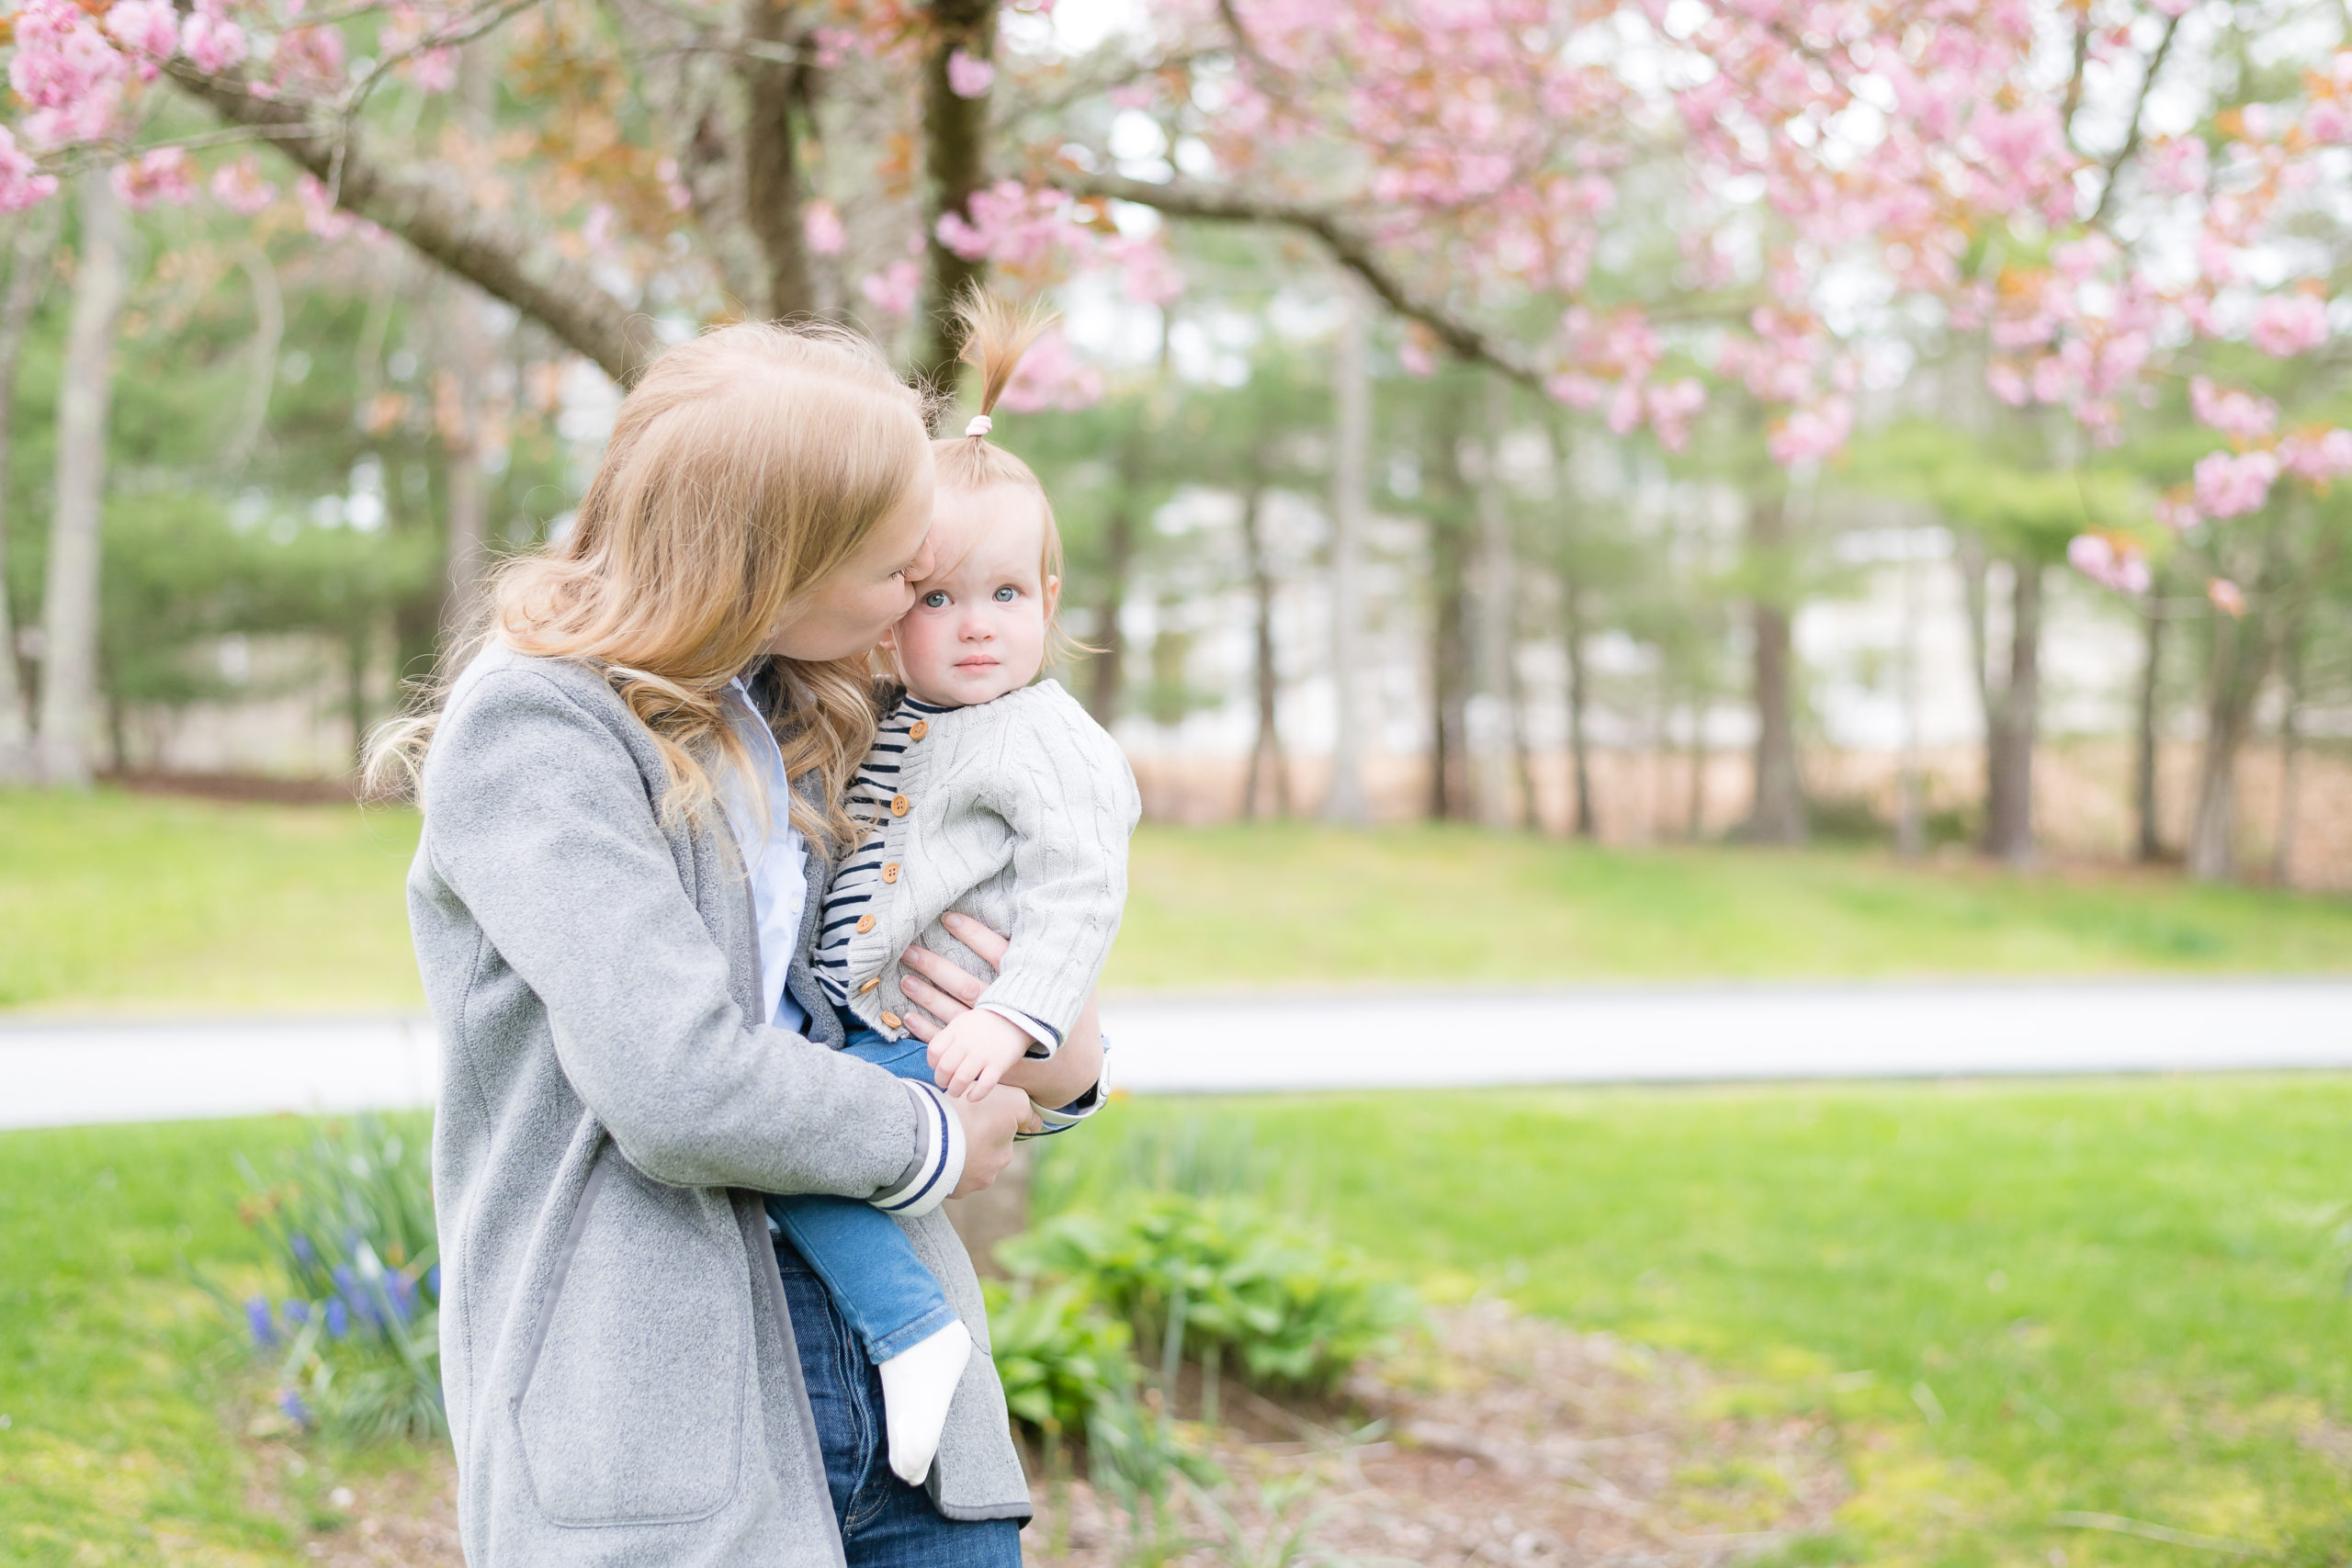 Mother kissing little girl on the cheek in front of a blooming cherry tree during Mother's Day family photoshoot